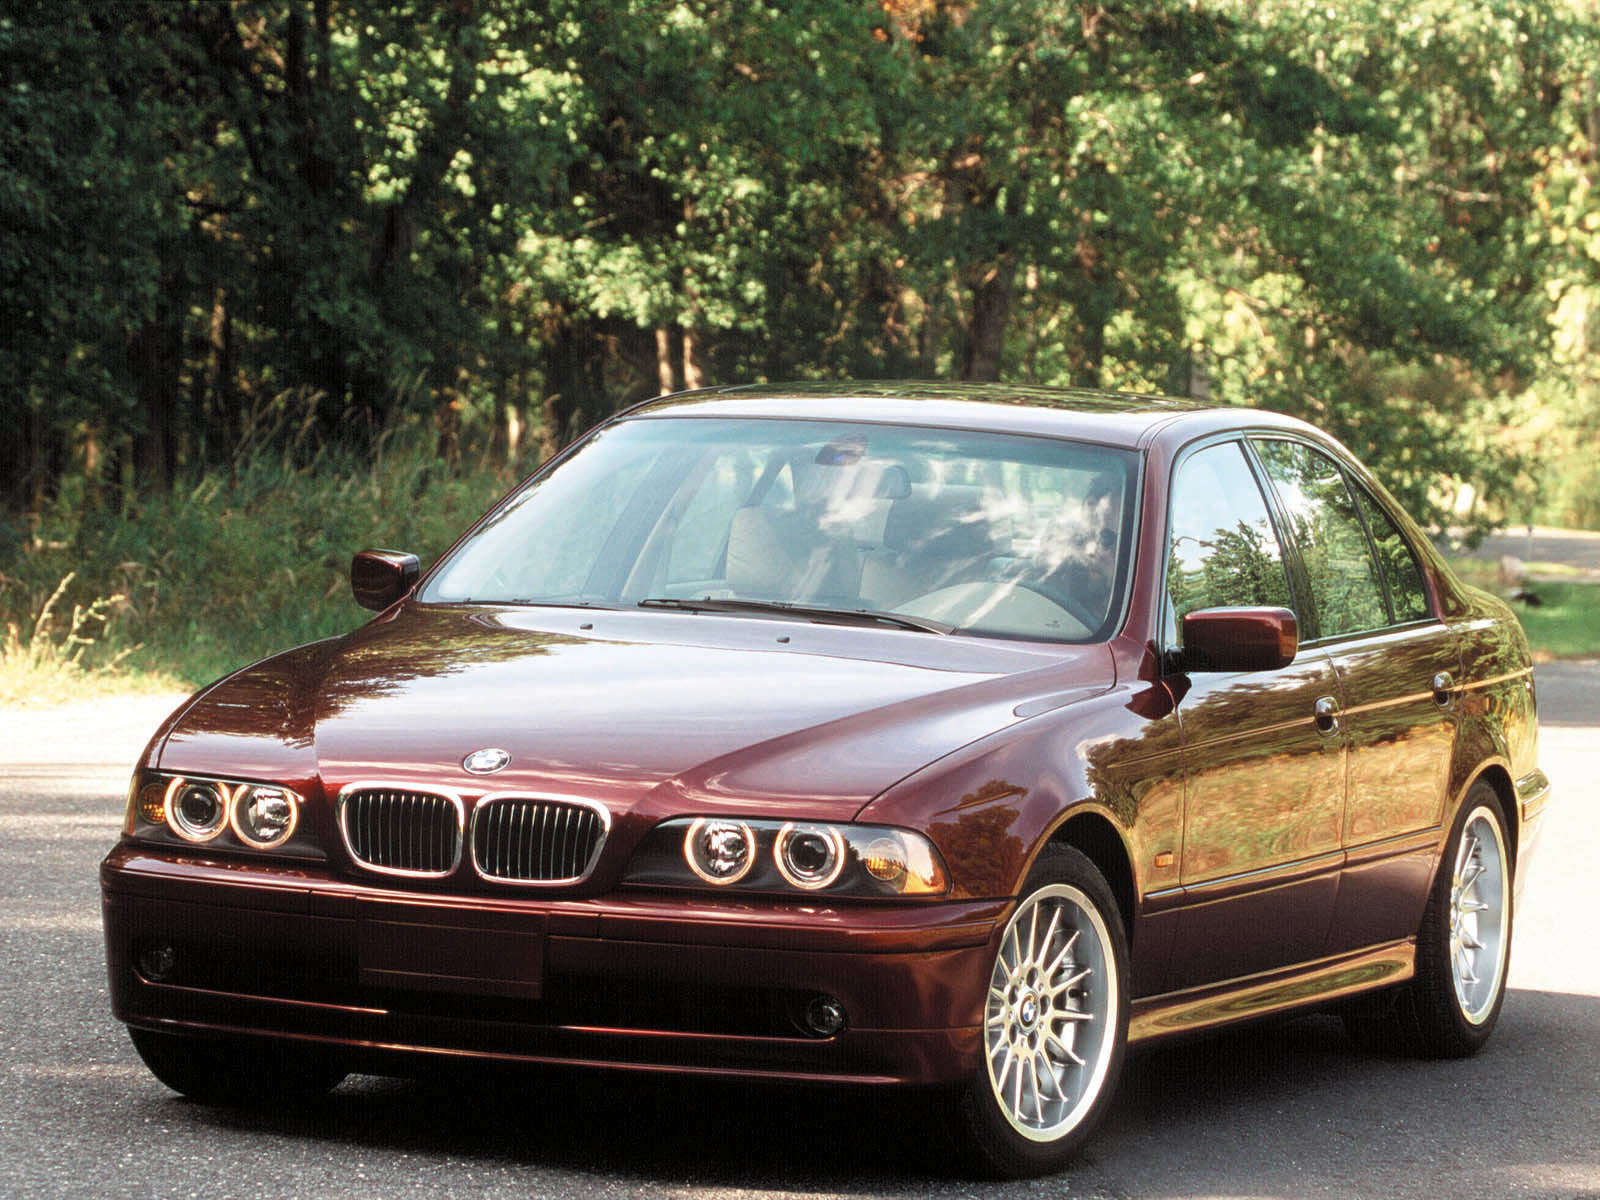 BMW 5 series 540i 1996 photo - 8